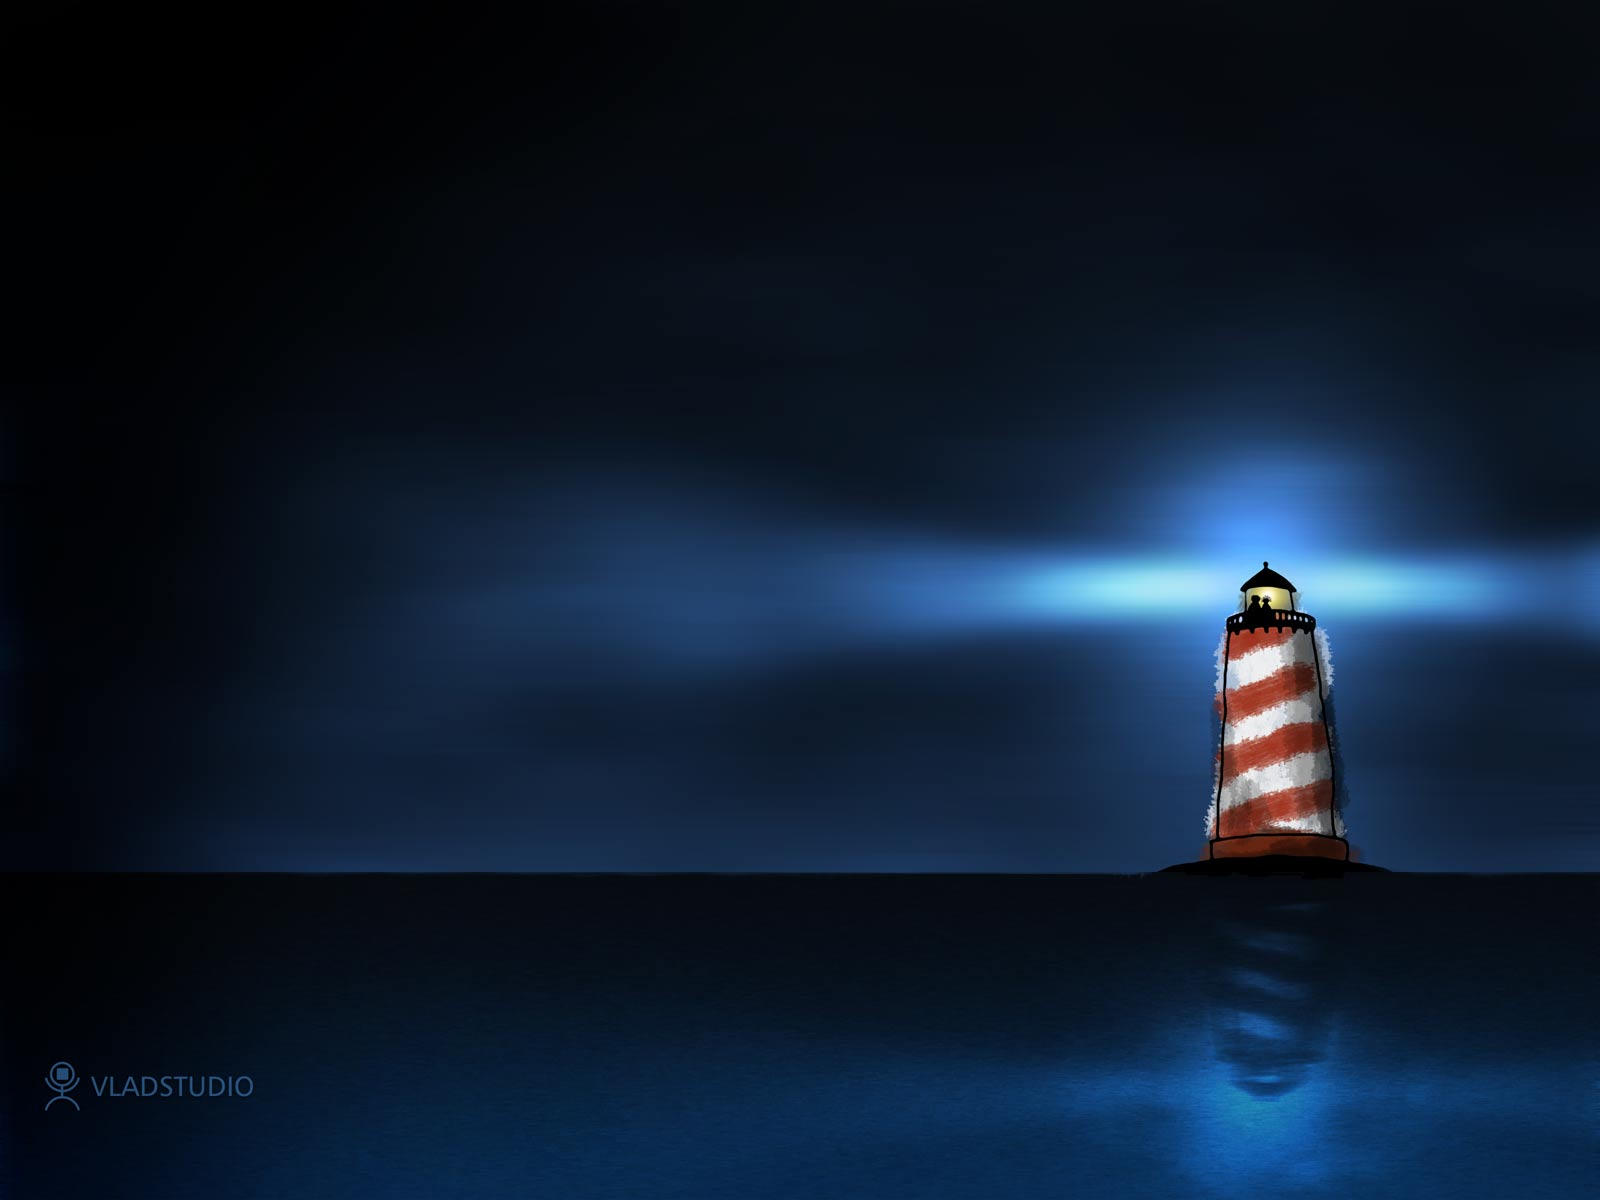 The Two and the Lighthouse by vladstudio